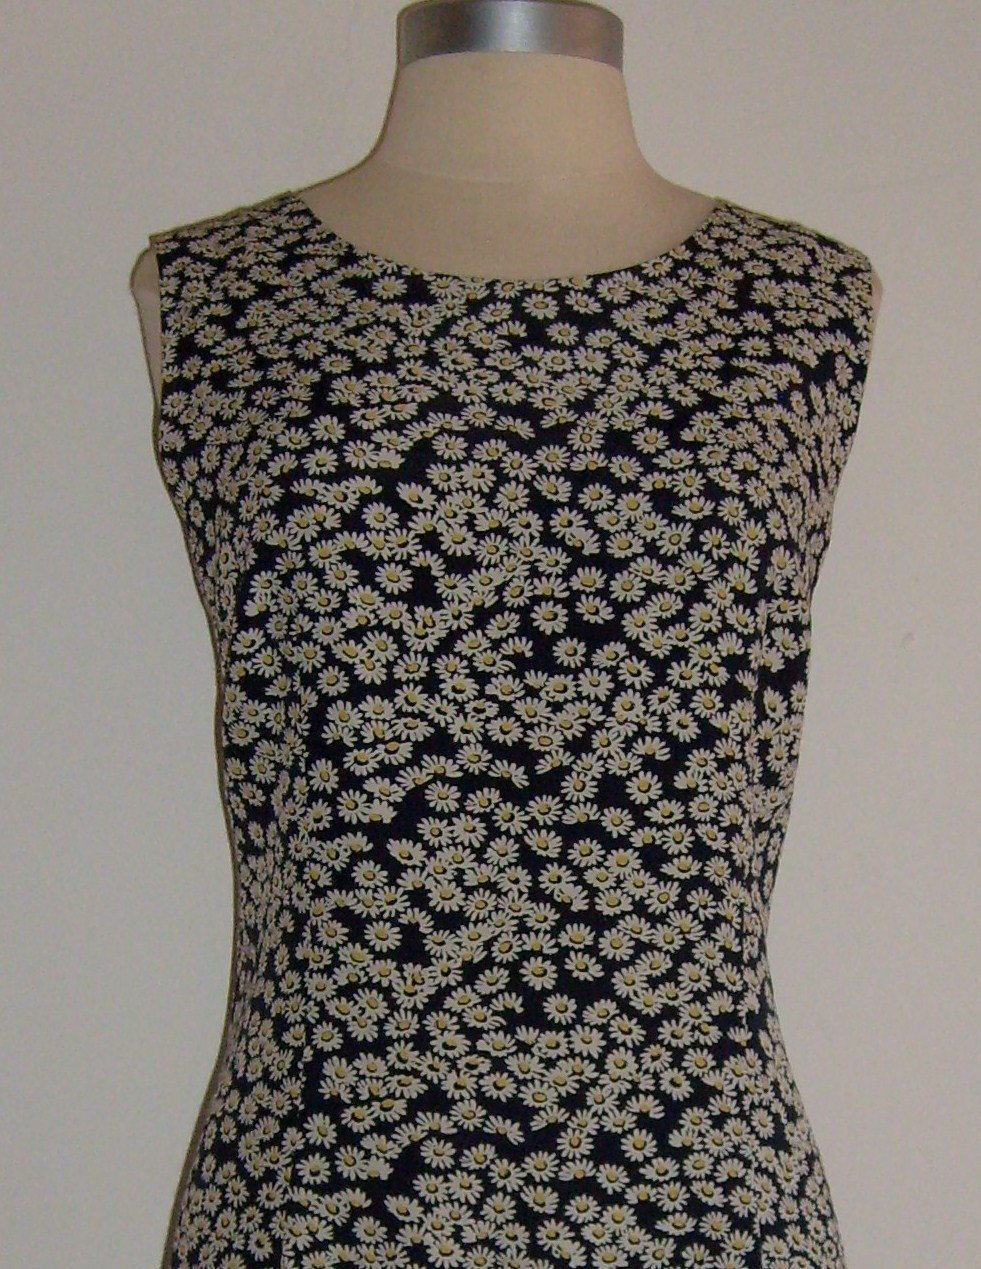 Talbots Black Daisy Flower Print Dress Size 12